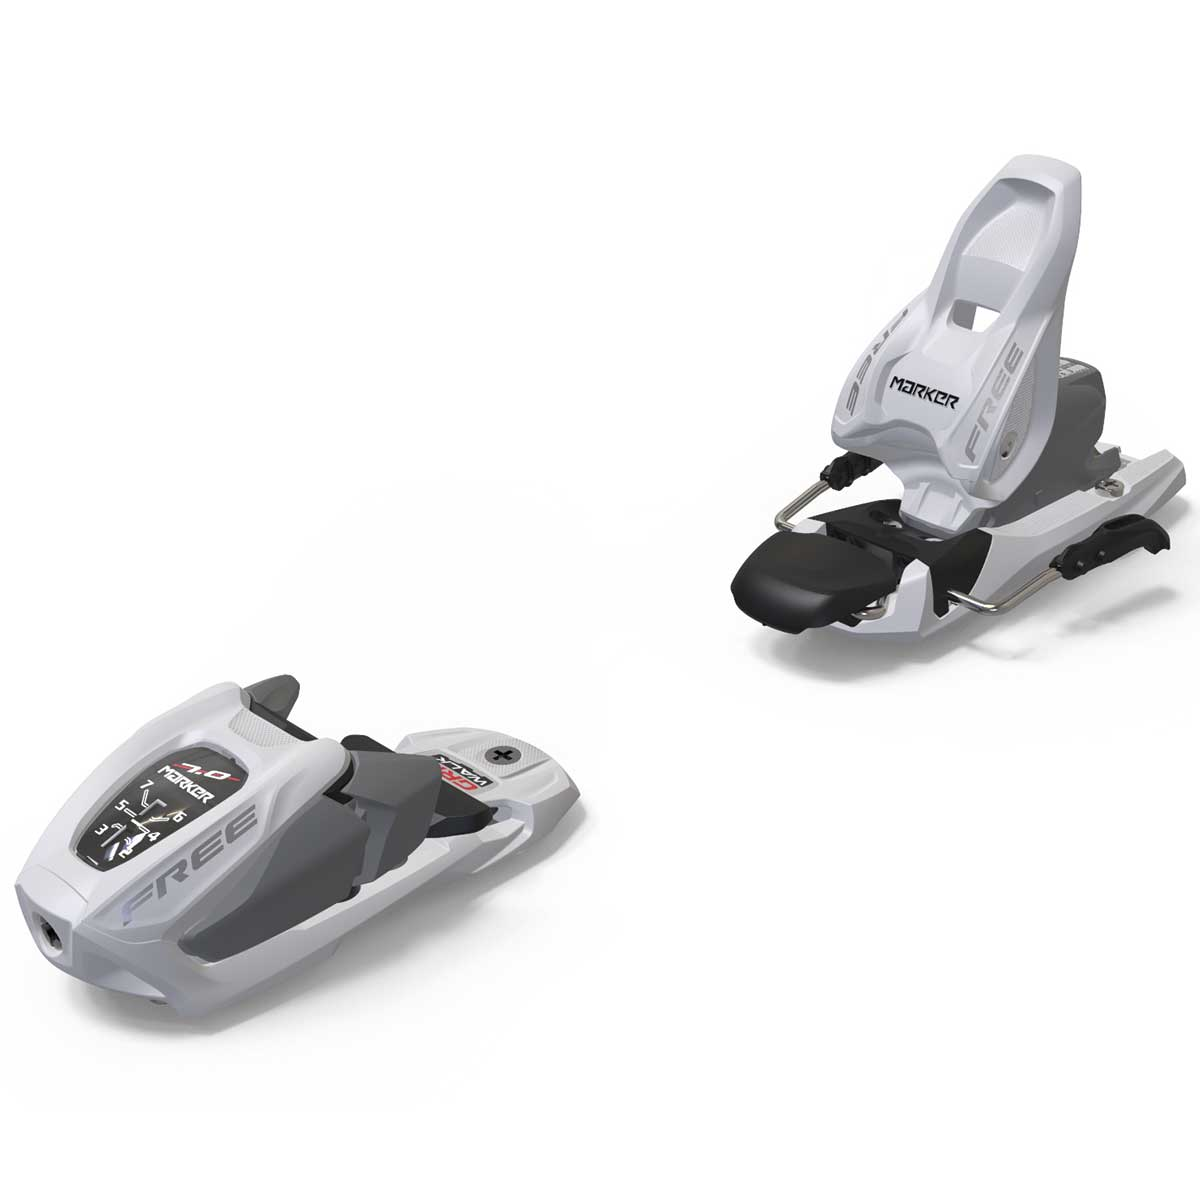 Marker Free 7 junior ski binding in white and silver